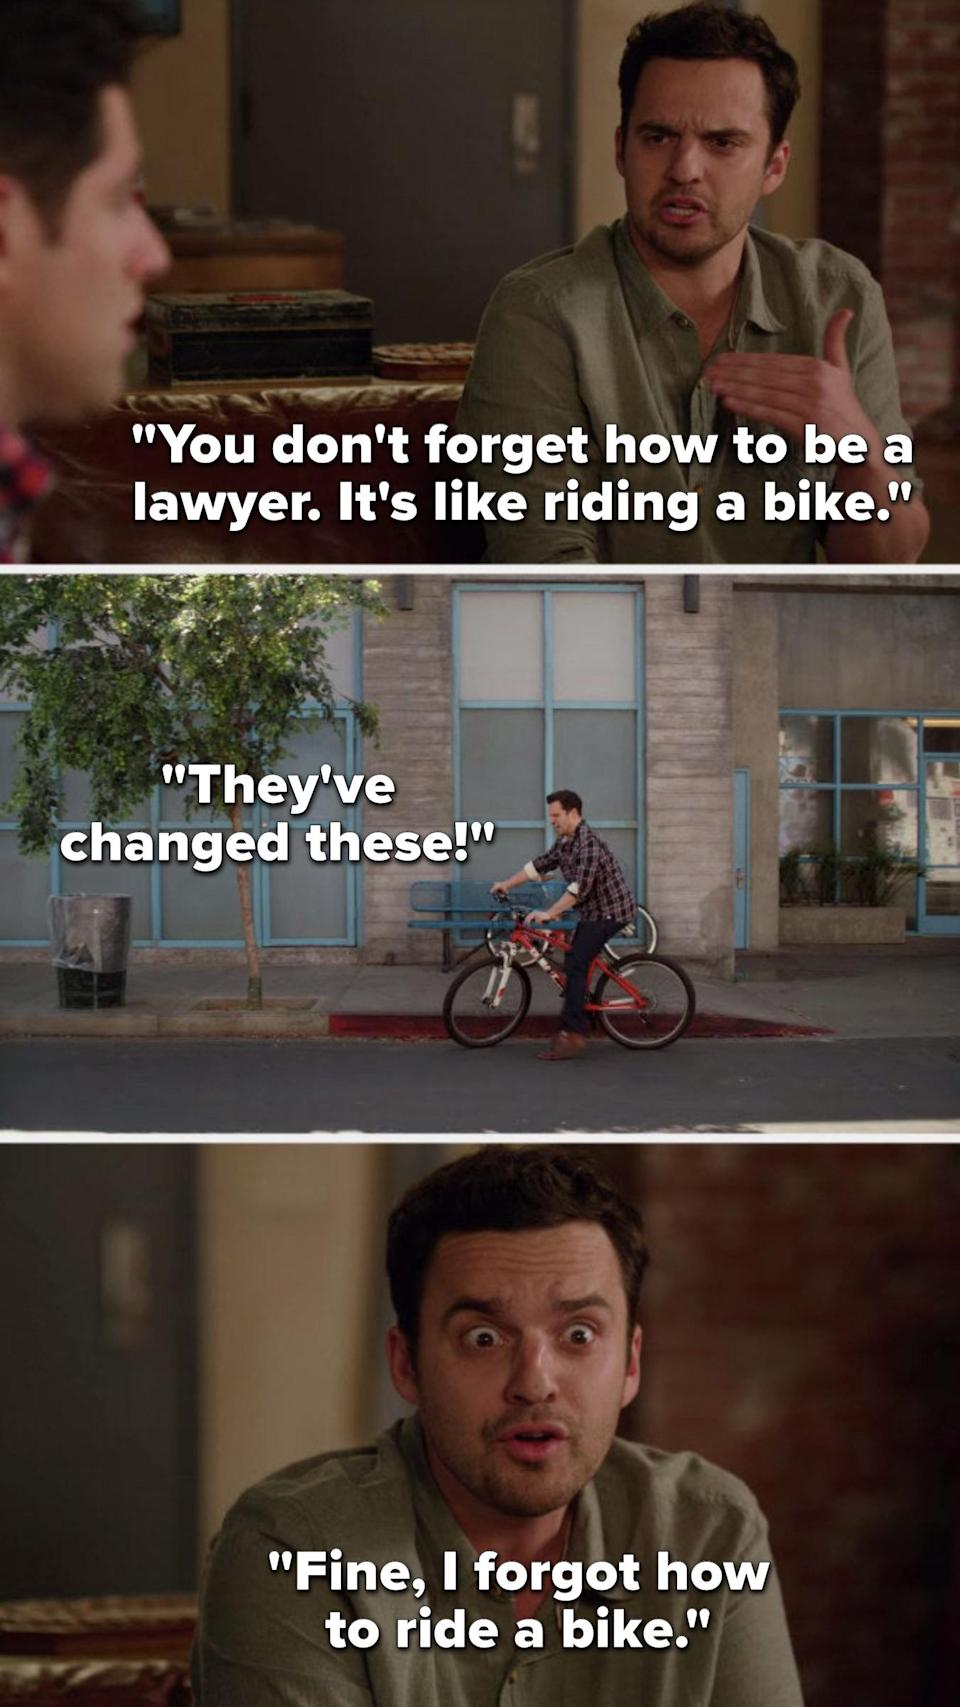 Nick says, You don't forget how to be a lawyer, it's like riding a bike, flashback to him unable to ride and bike and he says They've changed these, then Nick says, Fine, I forgot how to ride a bike